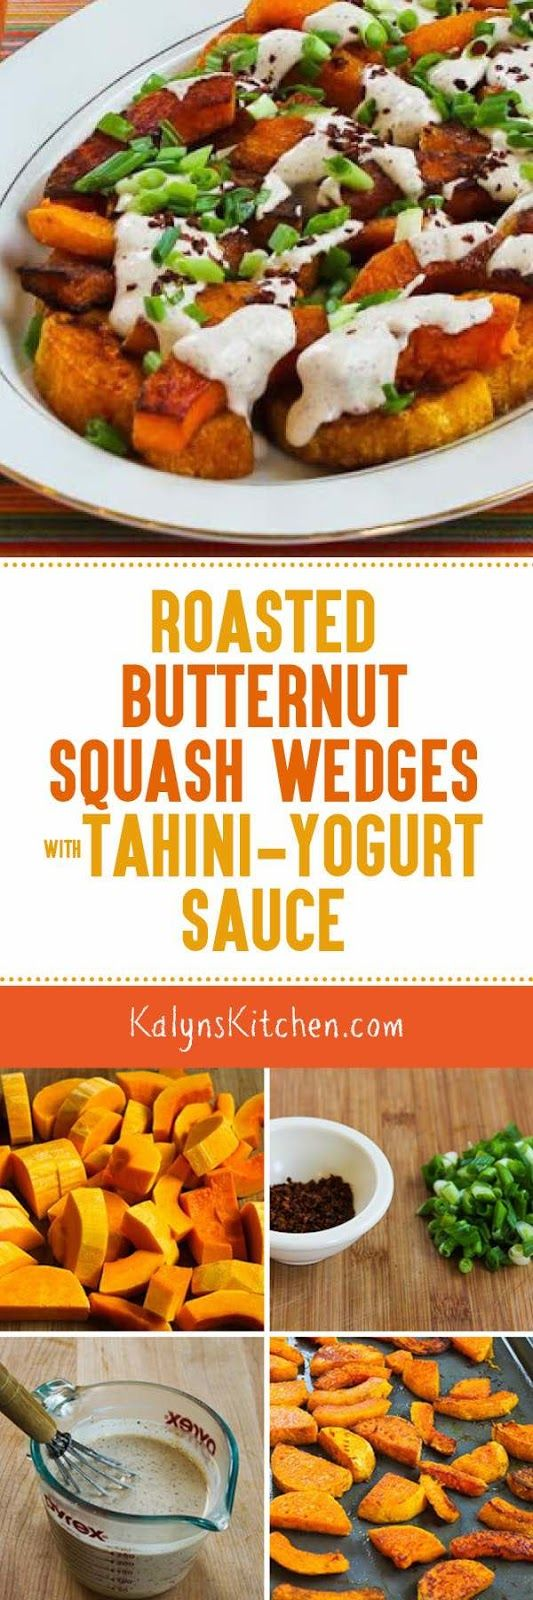 Roasted Butternut Squash Wedges with Tahini-Yogurt Sauce, Sumac, and Aleppo Pepper for a Meatless Monday main dish or an interesting and delicious side dish.  [found on KalynsKitchen.com]